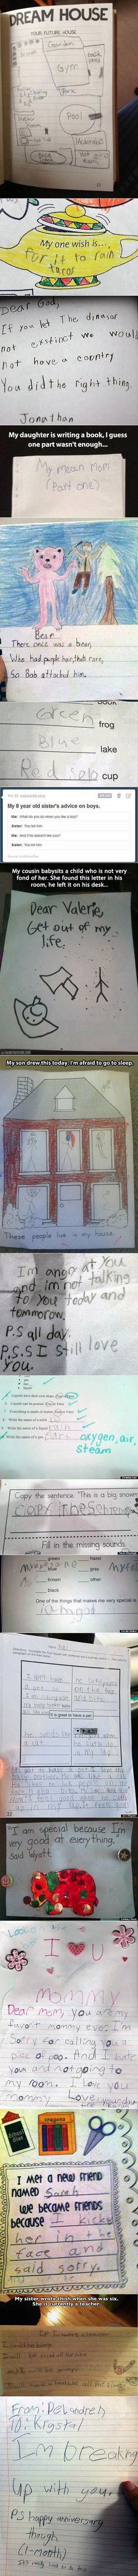 Here are some funny and geeky, yet real, things that kids have said, written.